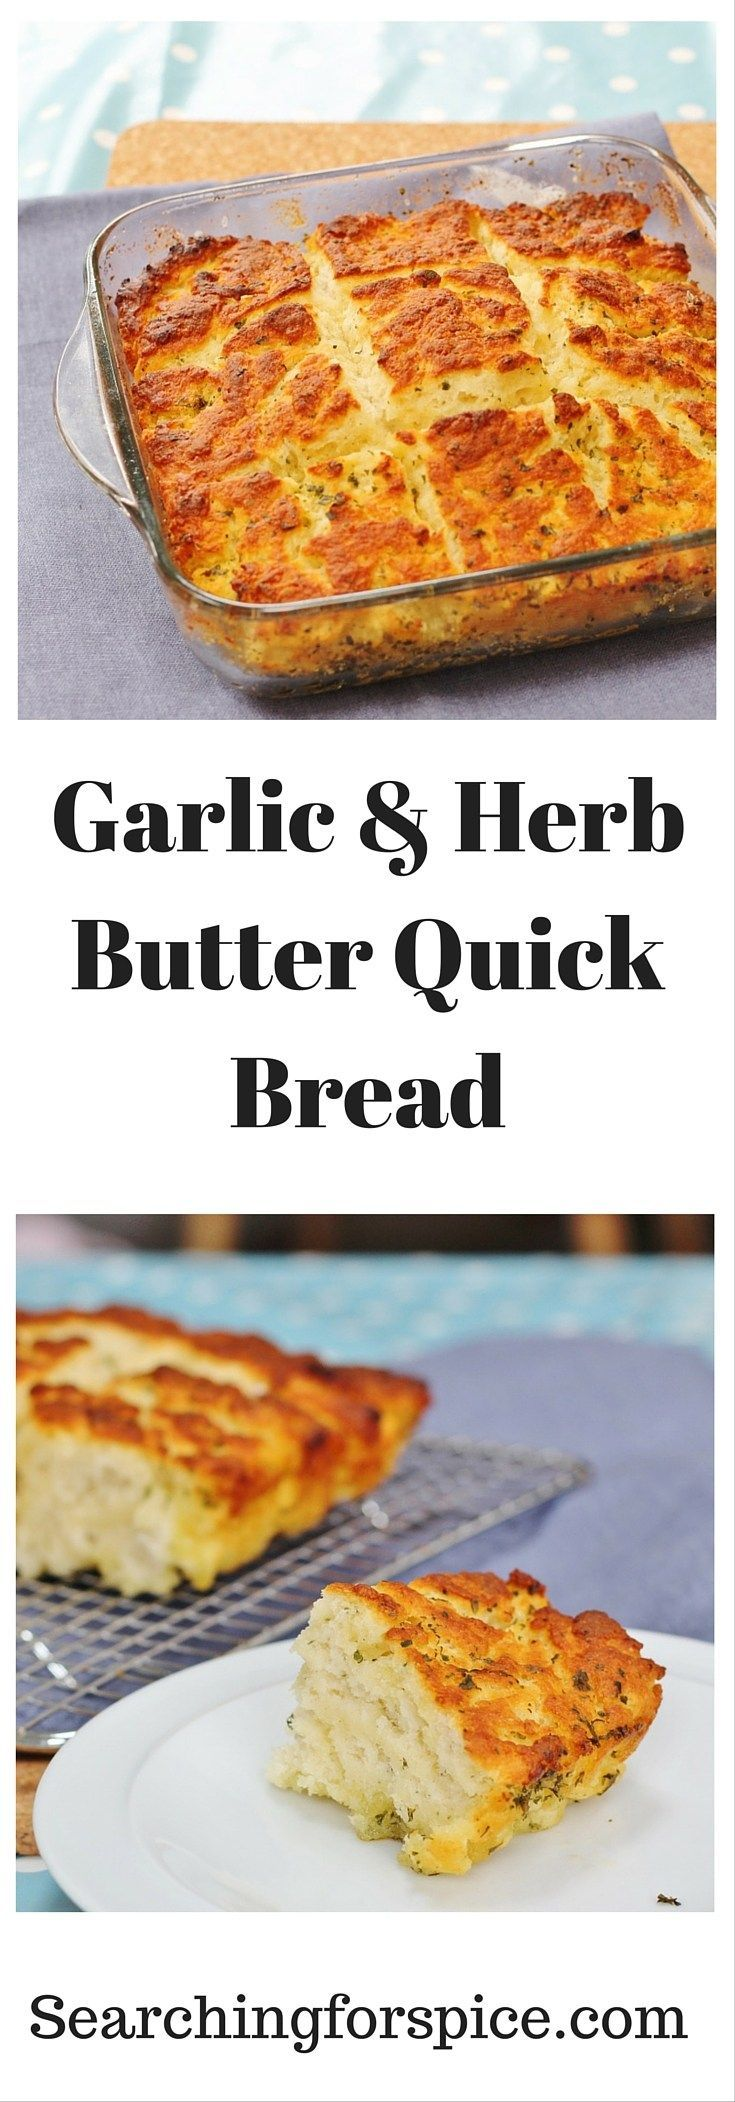 Garlic and herb butter quick bread.  An easy recipe for a tasty quick bread that's perfect with a salad or soup